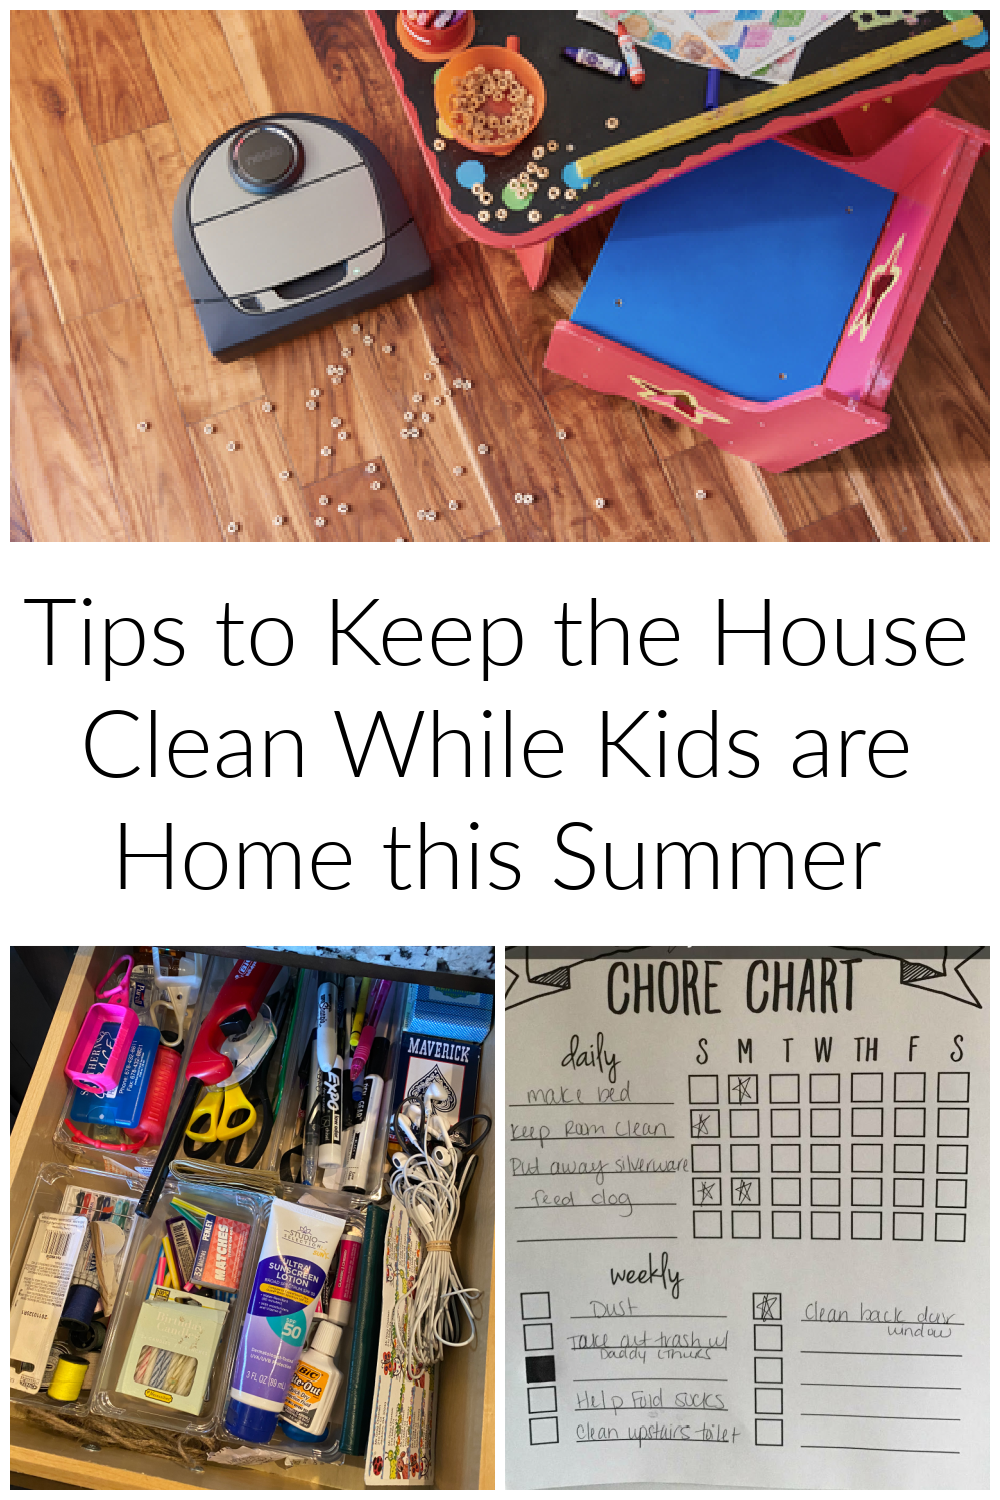 Tips to Keep the House Clean with Neato Robotics While Kids are Home this Summer